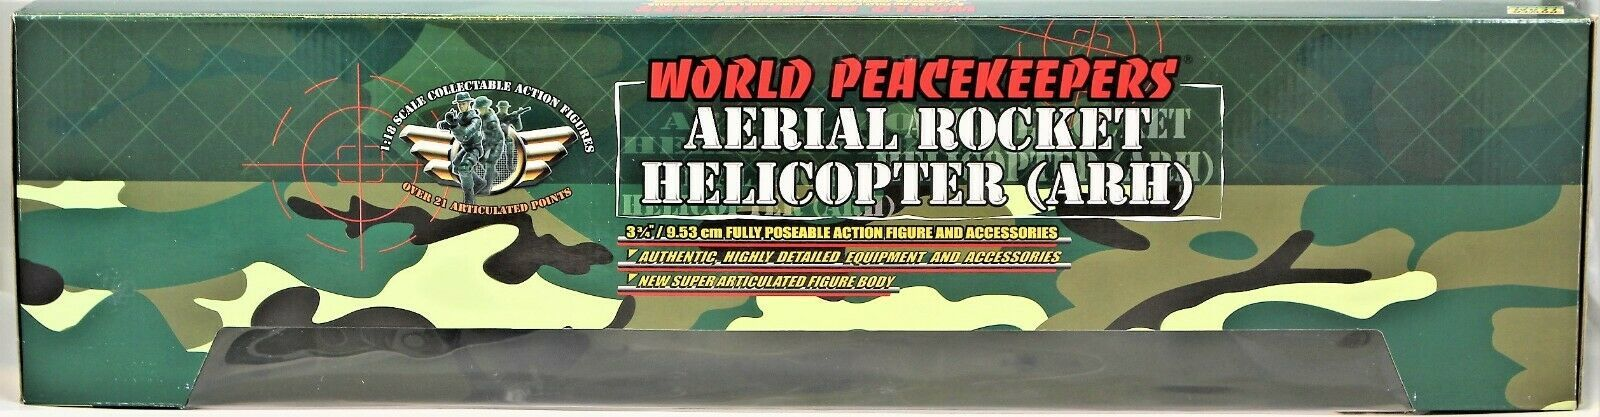 World Peacekeepers Power Team Elite Aerial Rocket Helicopter (ARH) 1:18 Scale image 5